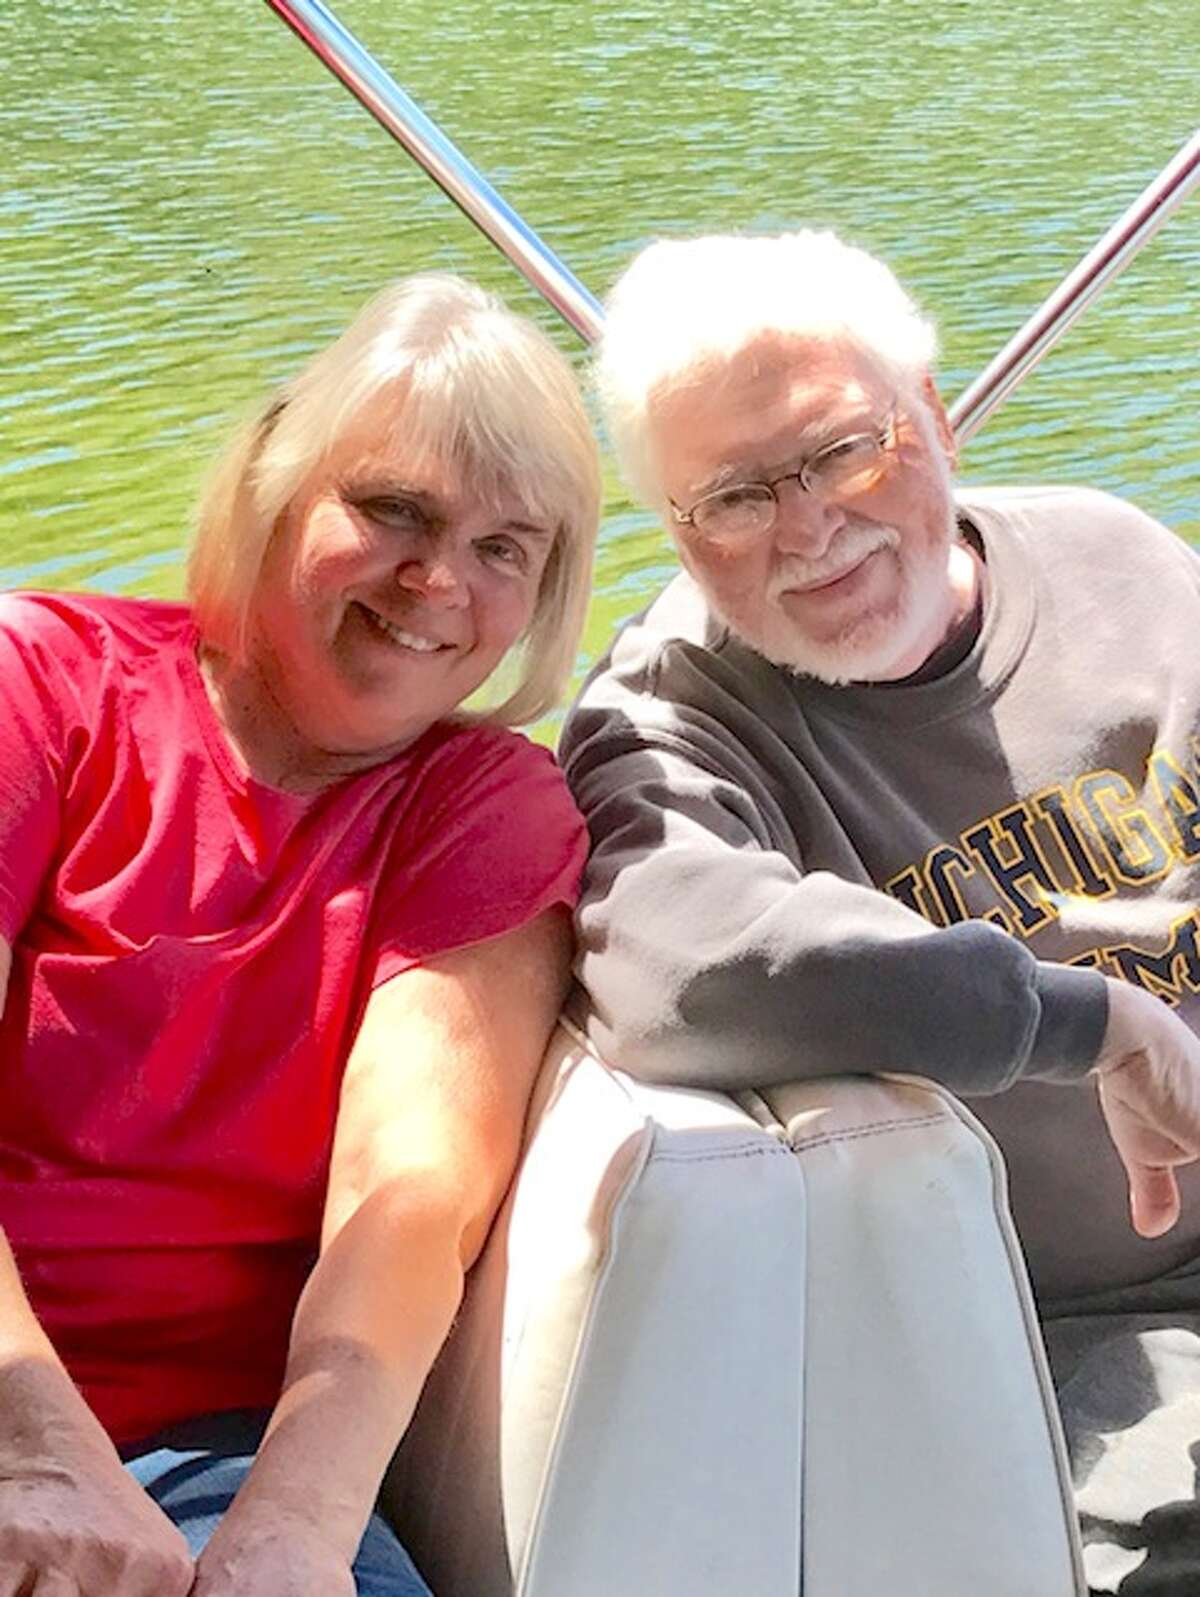 p.p1 {margin: 0.0px 0.0px 0.0px 0.0px; font: 12.0px Helvetica} Wayne and Joyce Keim, of Bay Port, have been married for 46 years.